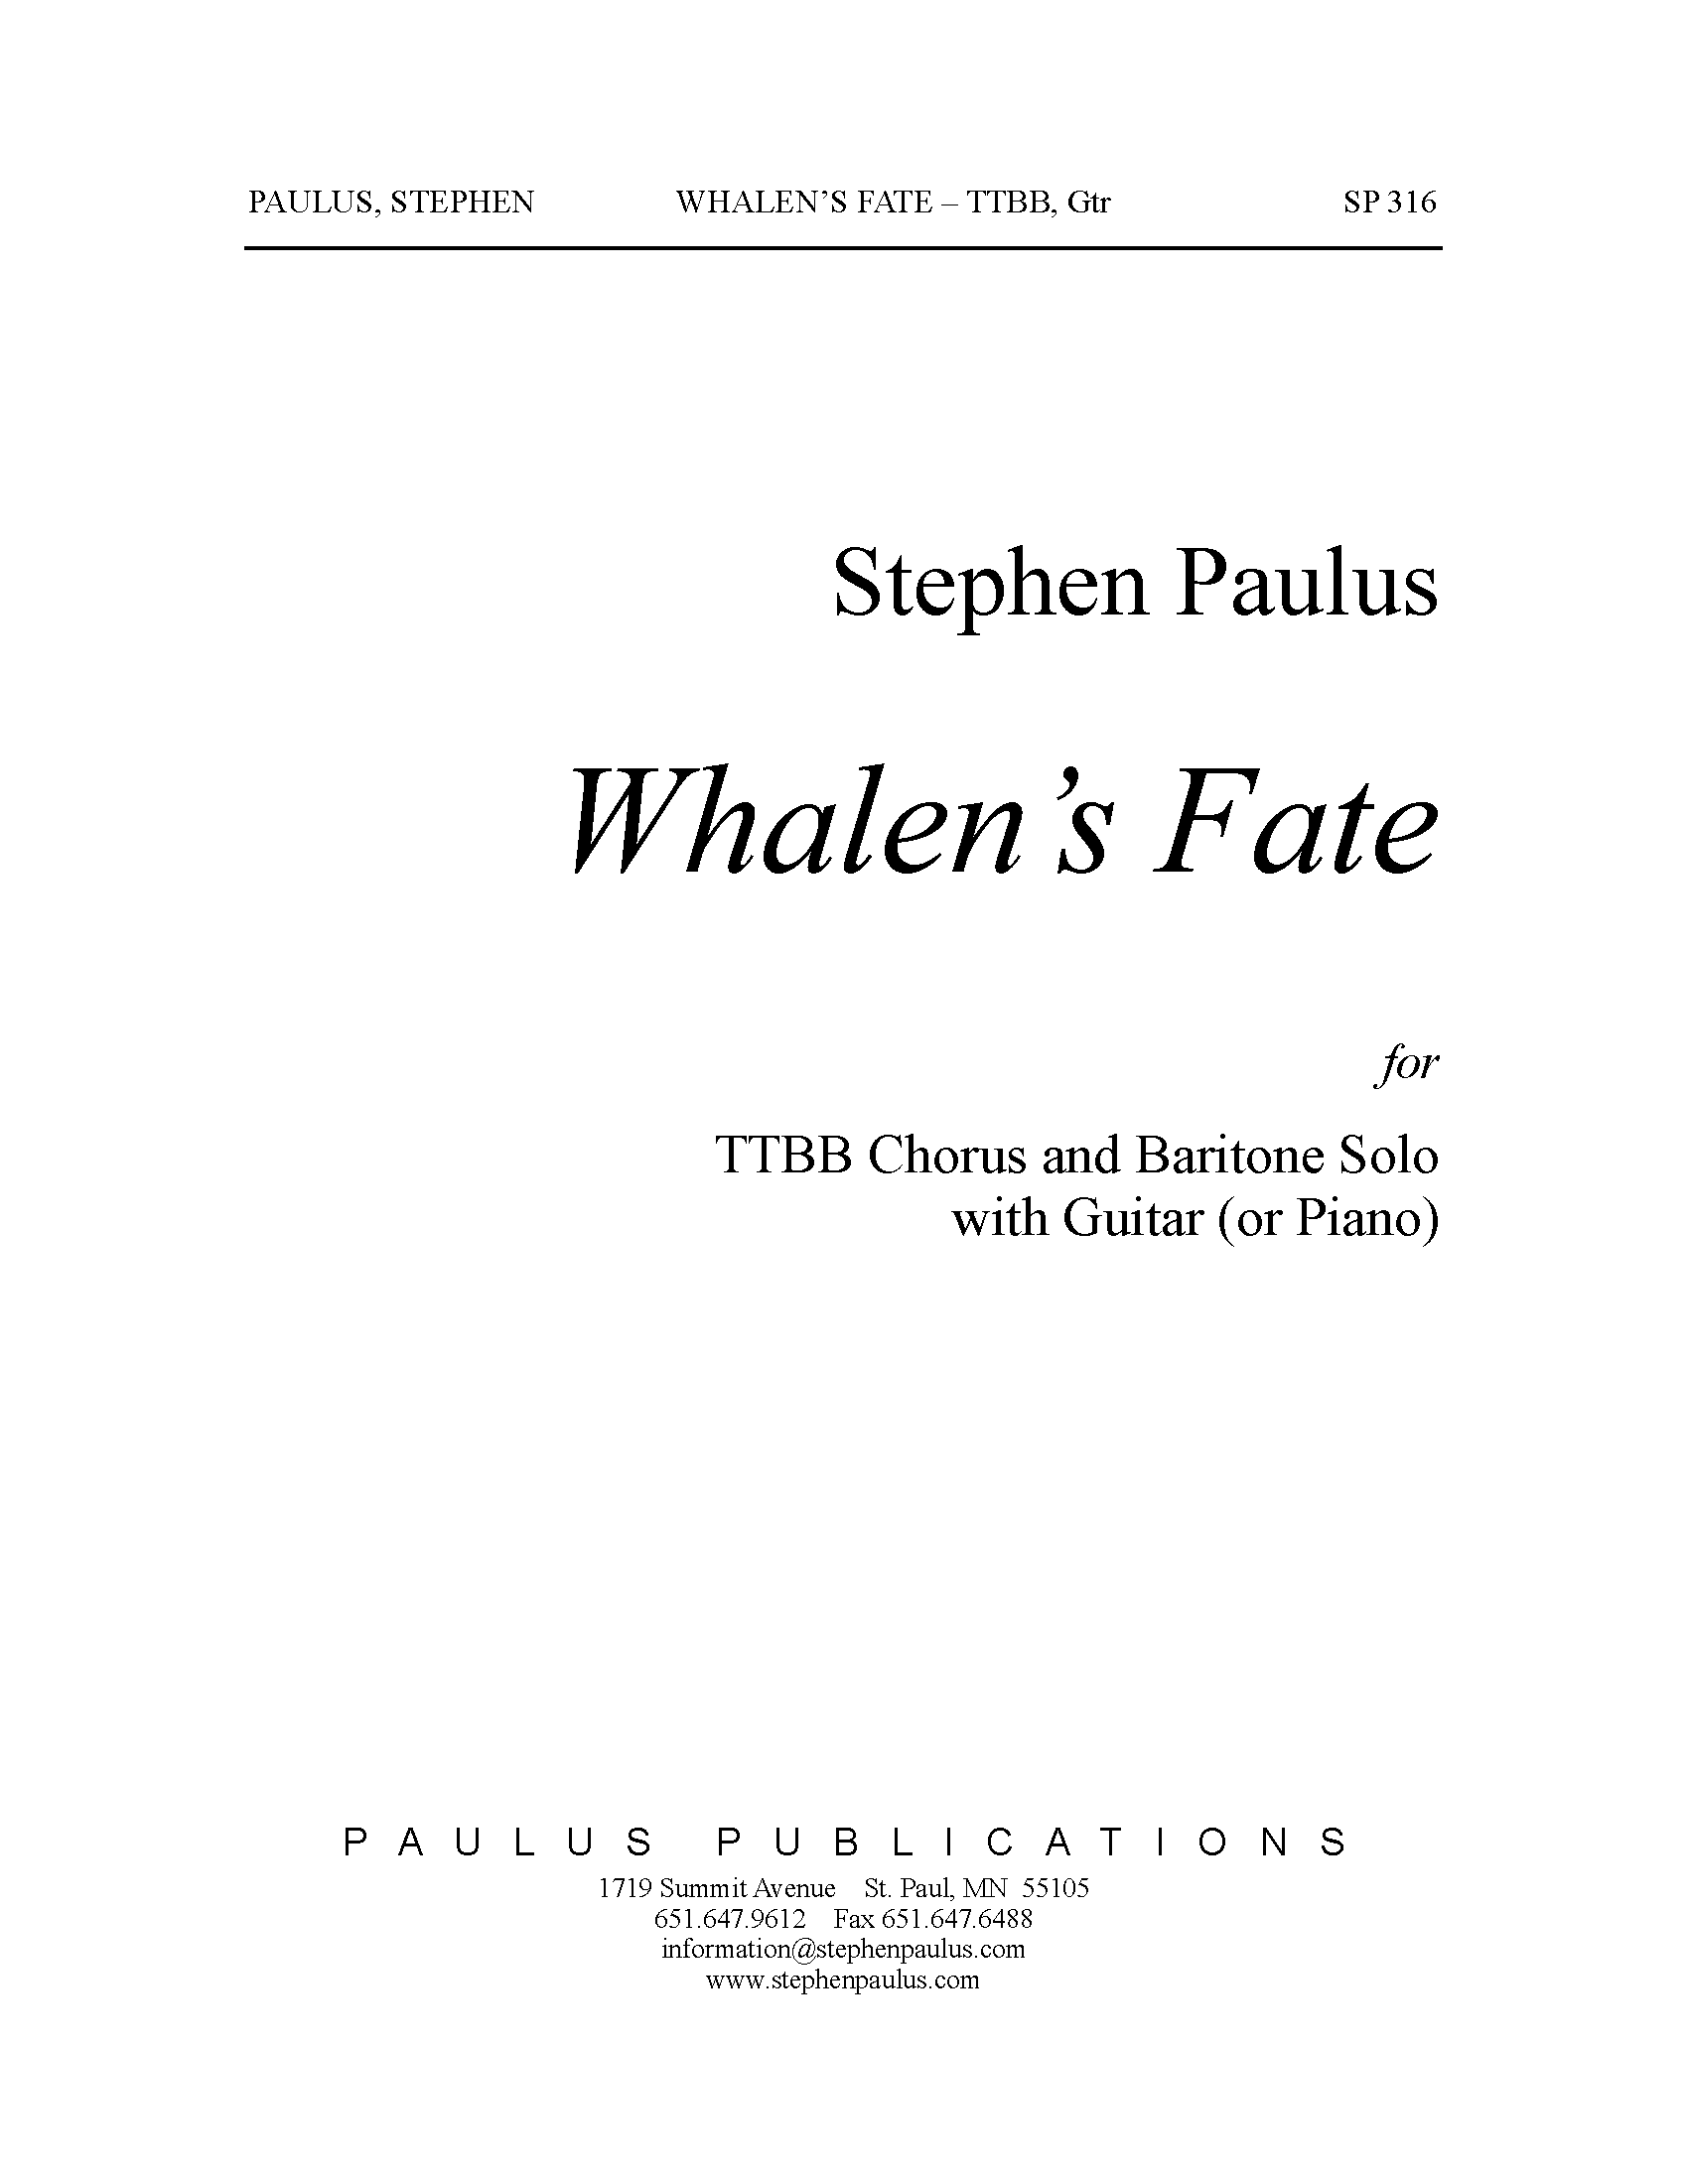 Whalen's Fate for Bar. solo, TTBB Chorus & Guitar (or Piano)